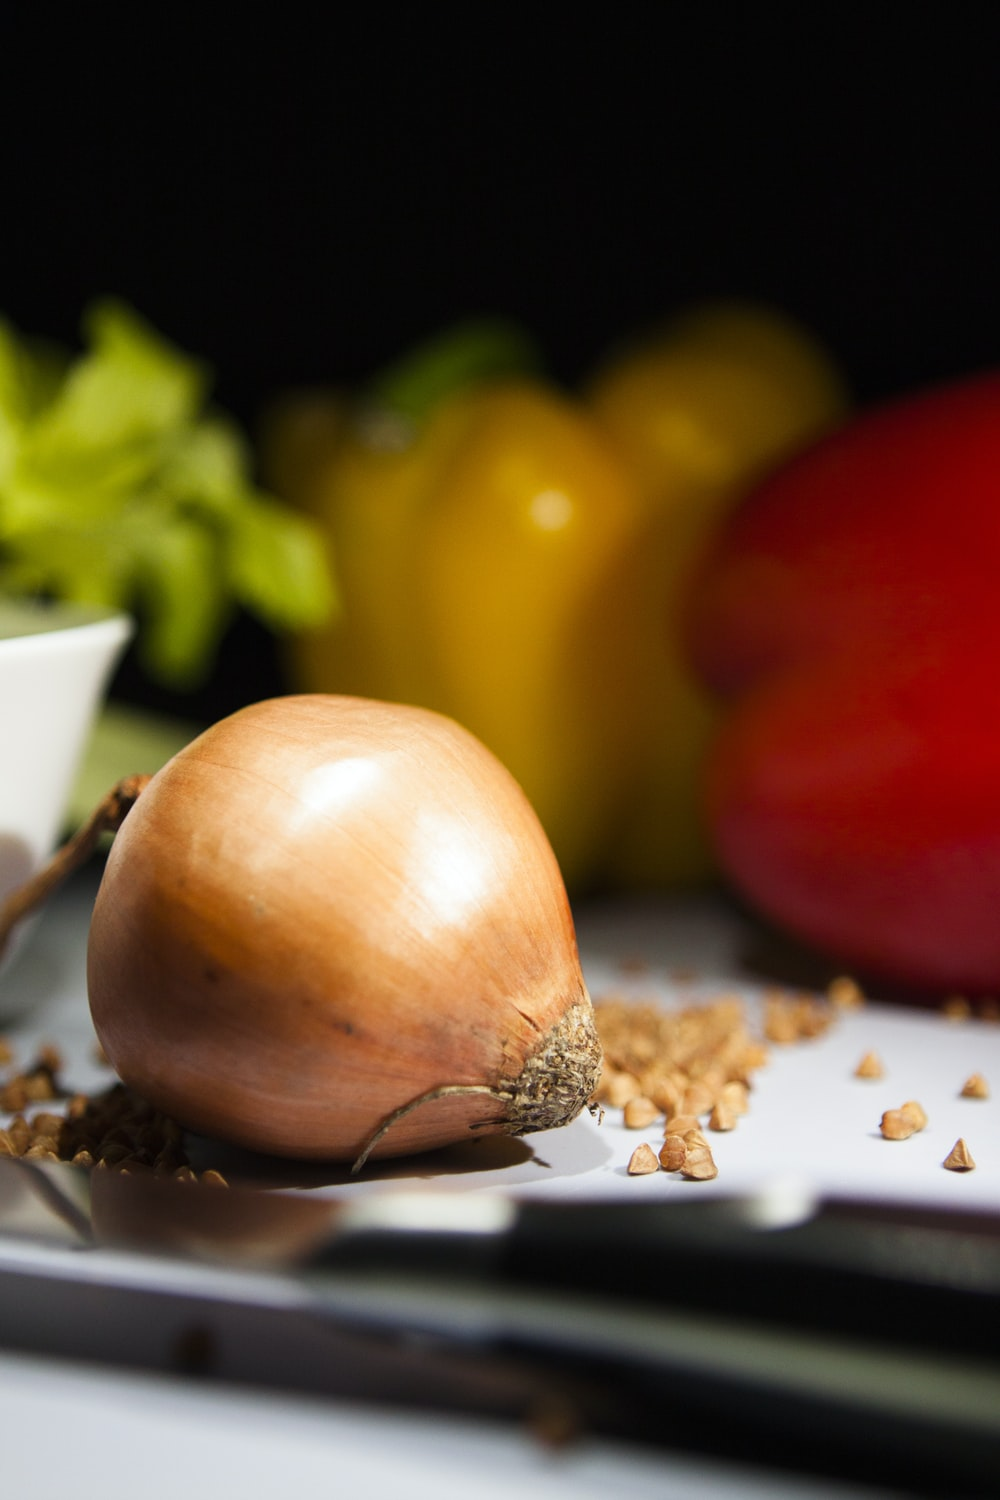 brown onion on white paper